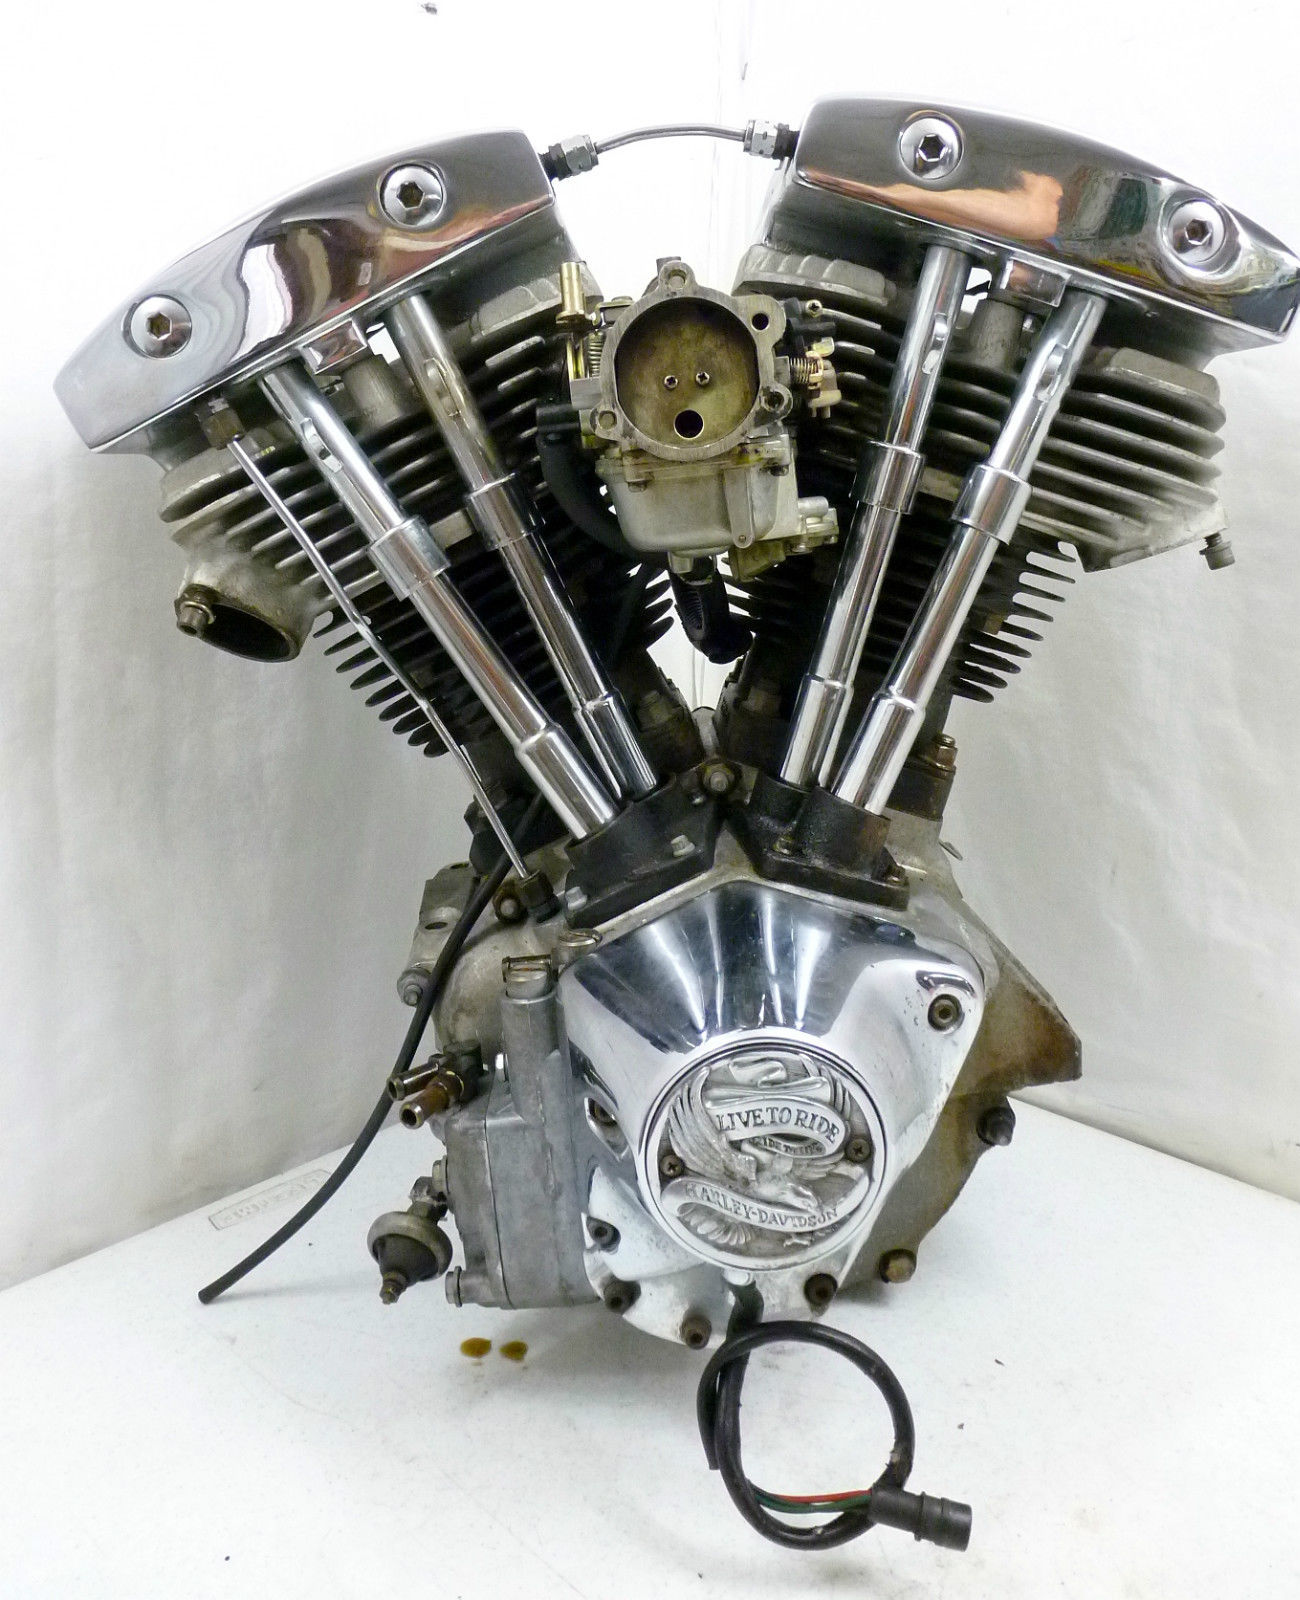 Yc Classified Ads Shovelhead Engine Diagrams Questions Jeremy2davgmailcom Pic1 Pic2 Pic3